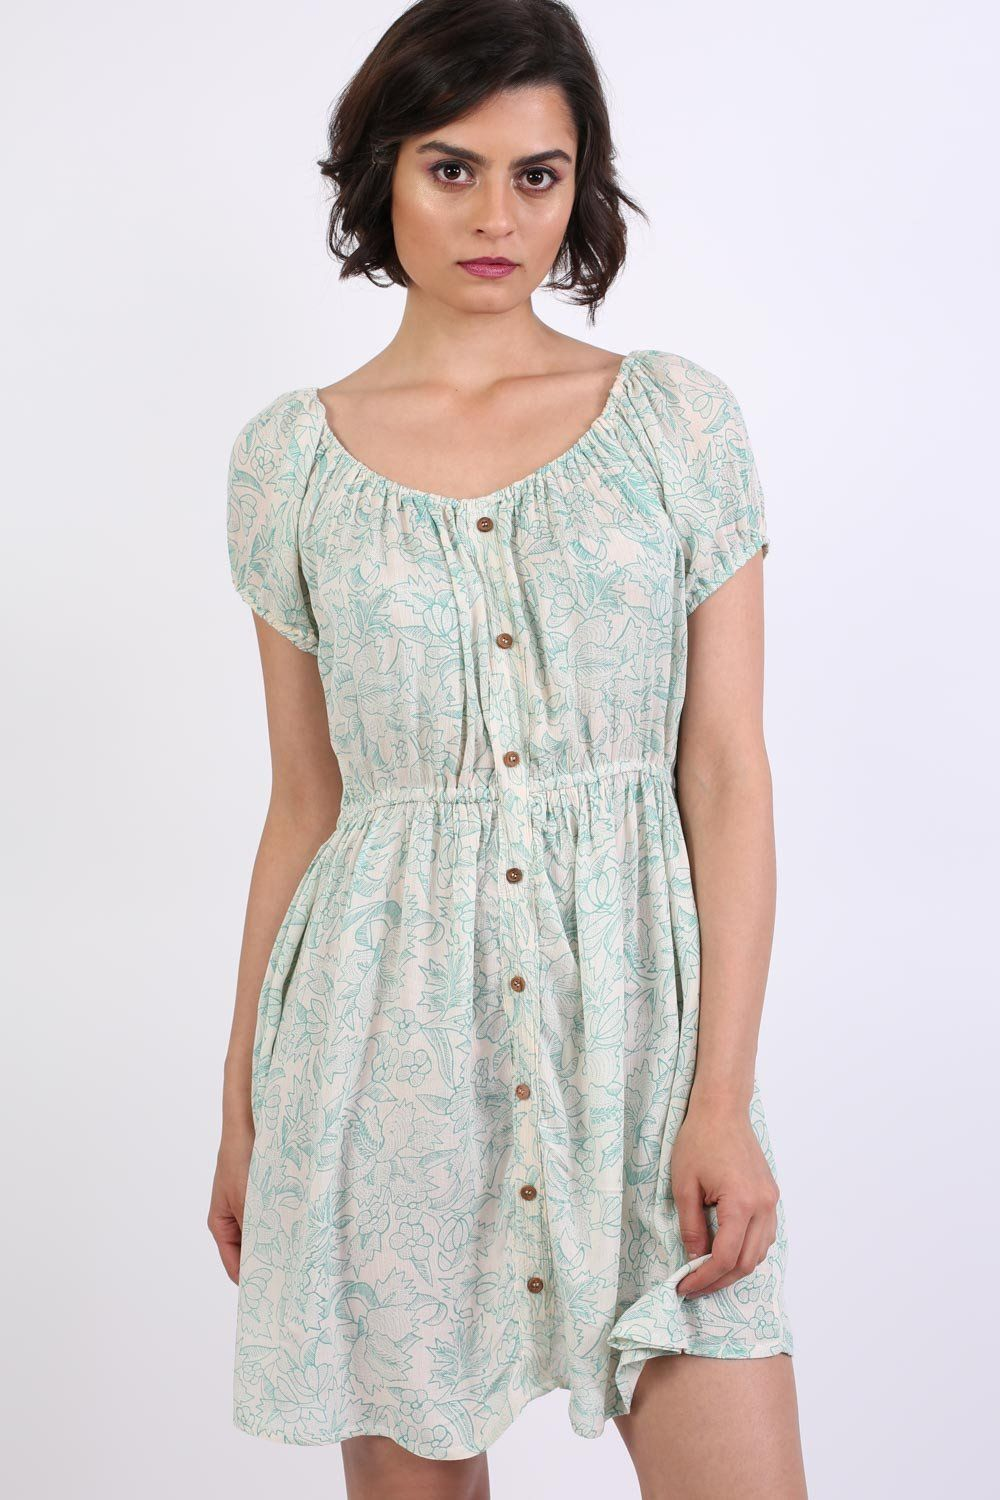 Scoop Neck Smock Printed Skater Mini Dress in Jade Green 1